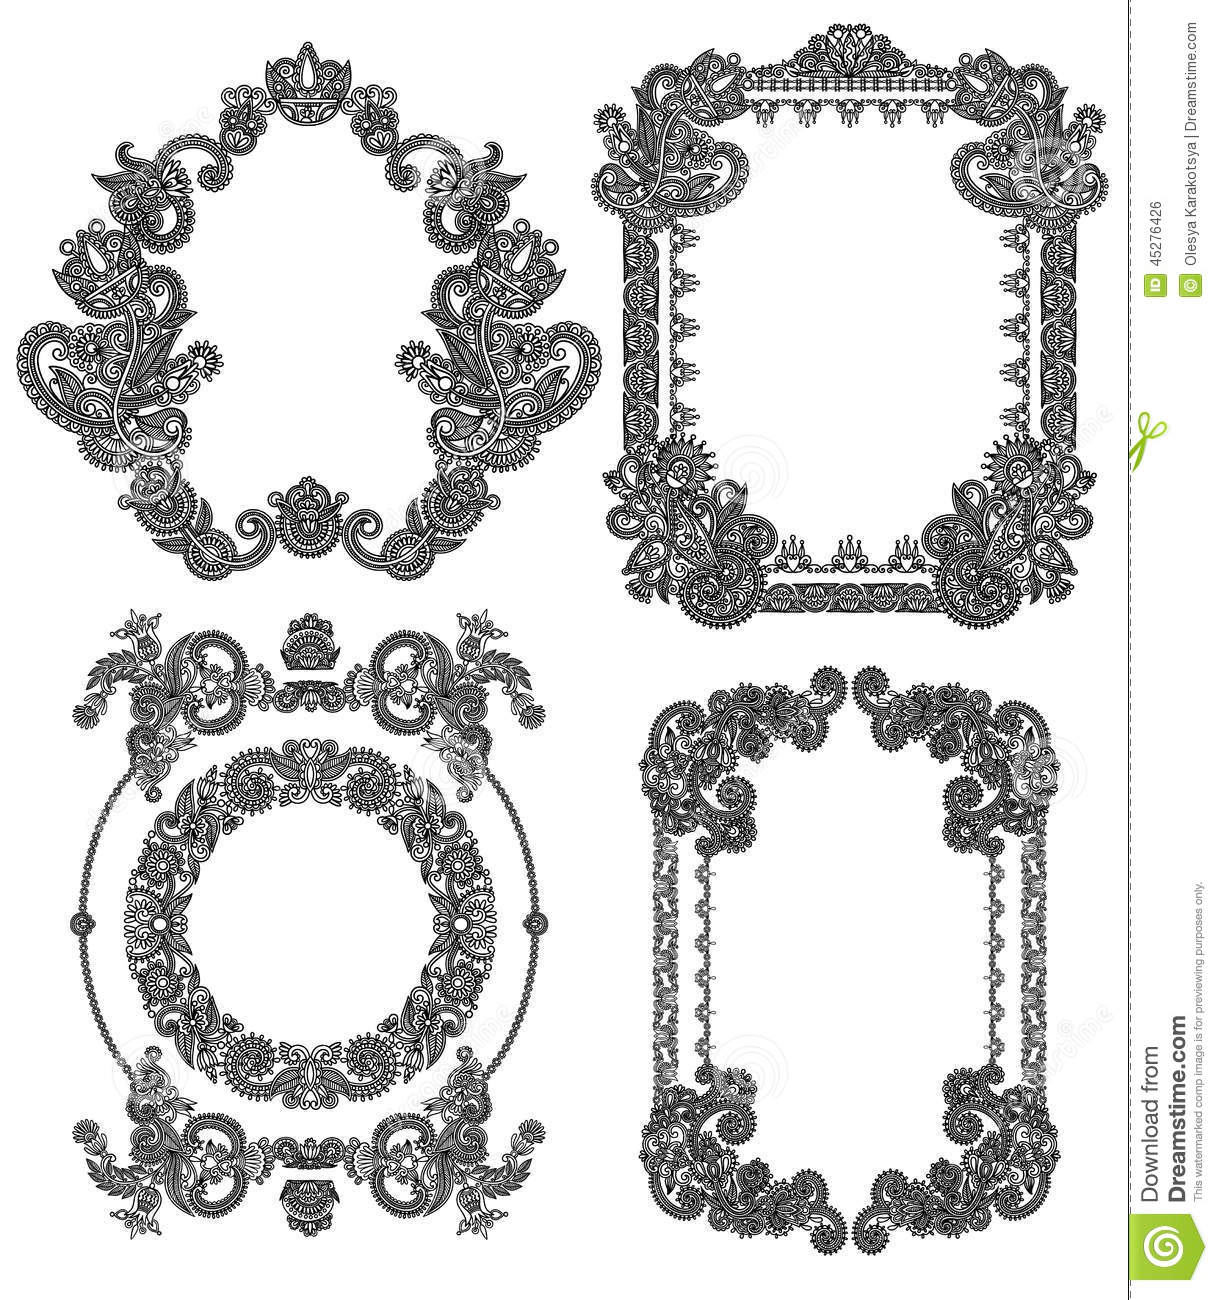 Frame Design Line Art : Black line art ornate flower design frame stock vector